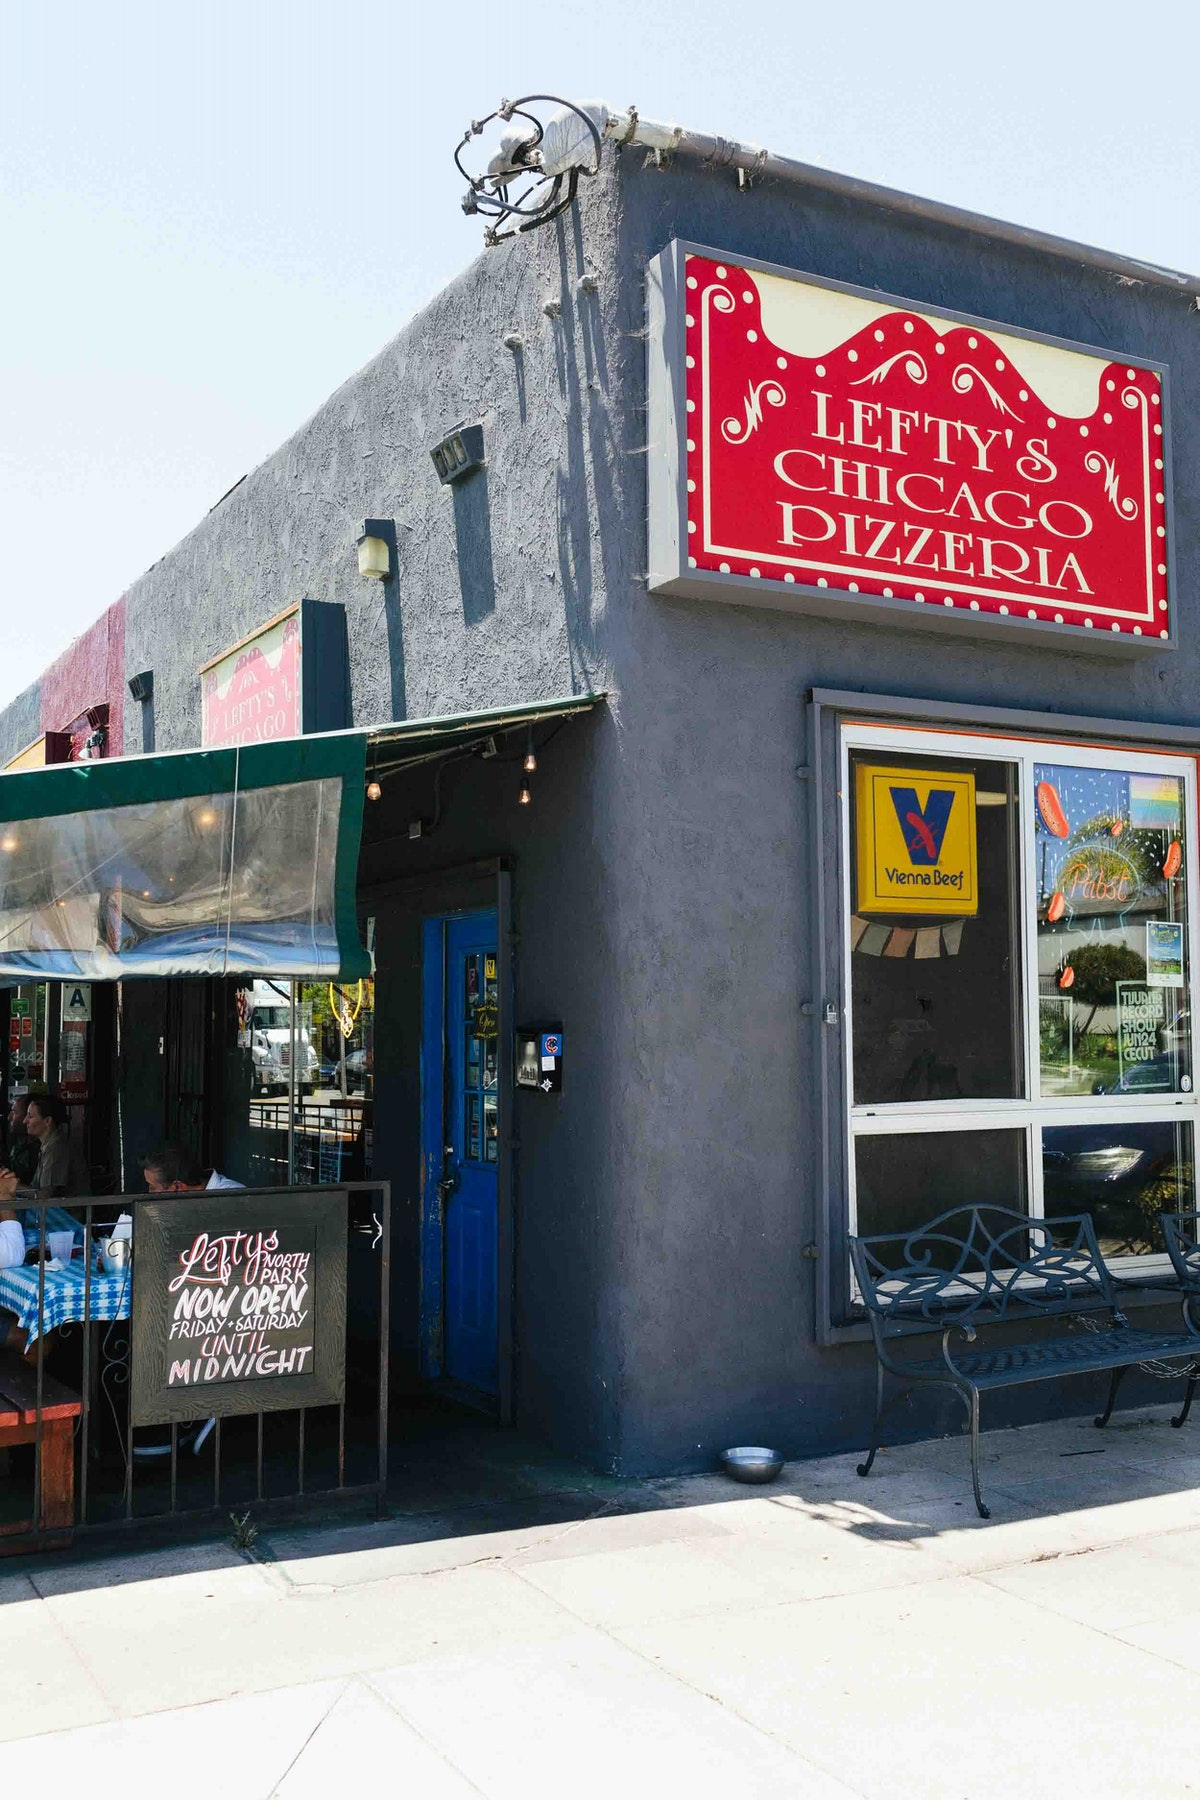 Lefty's Chicago Pizzaria